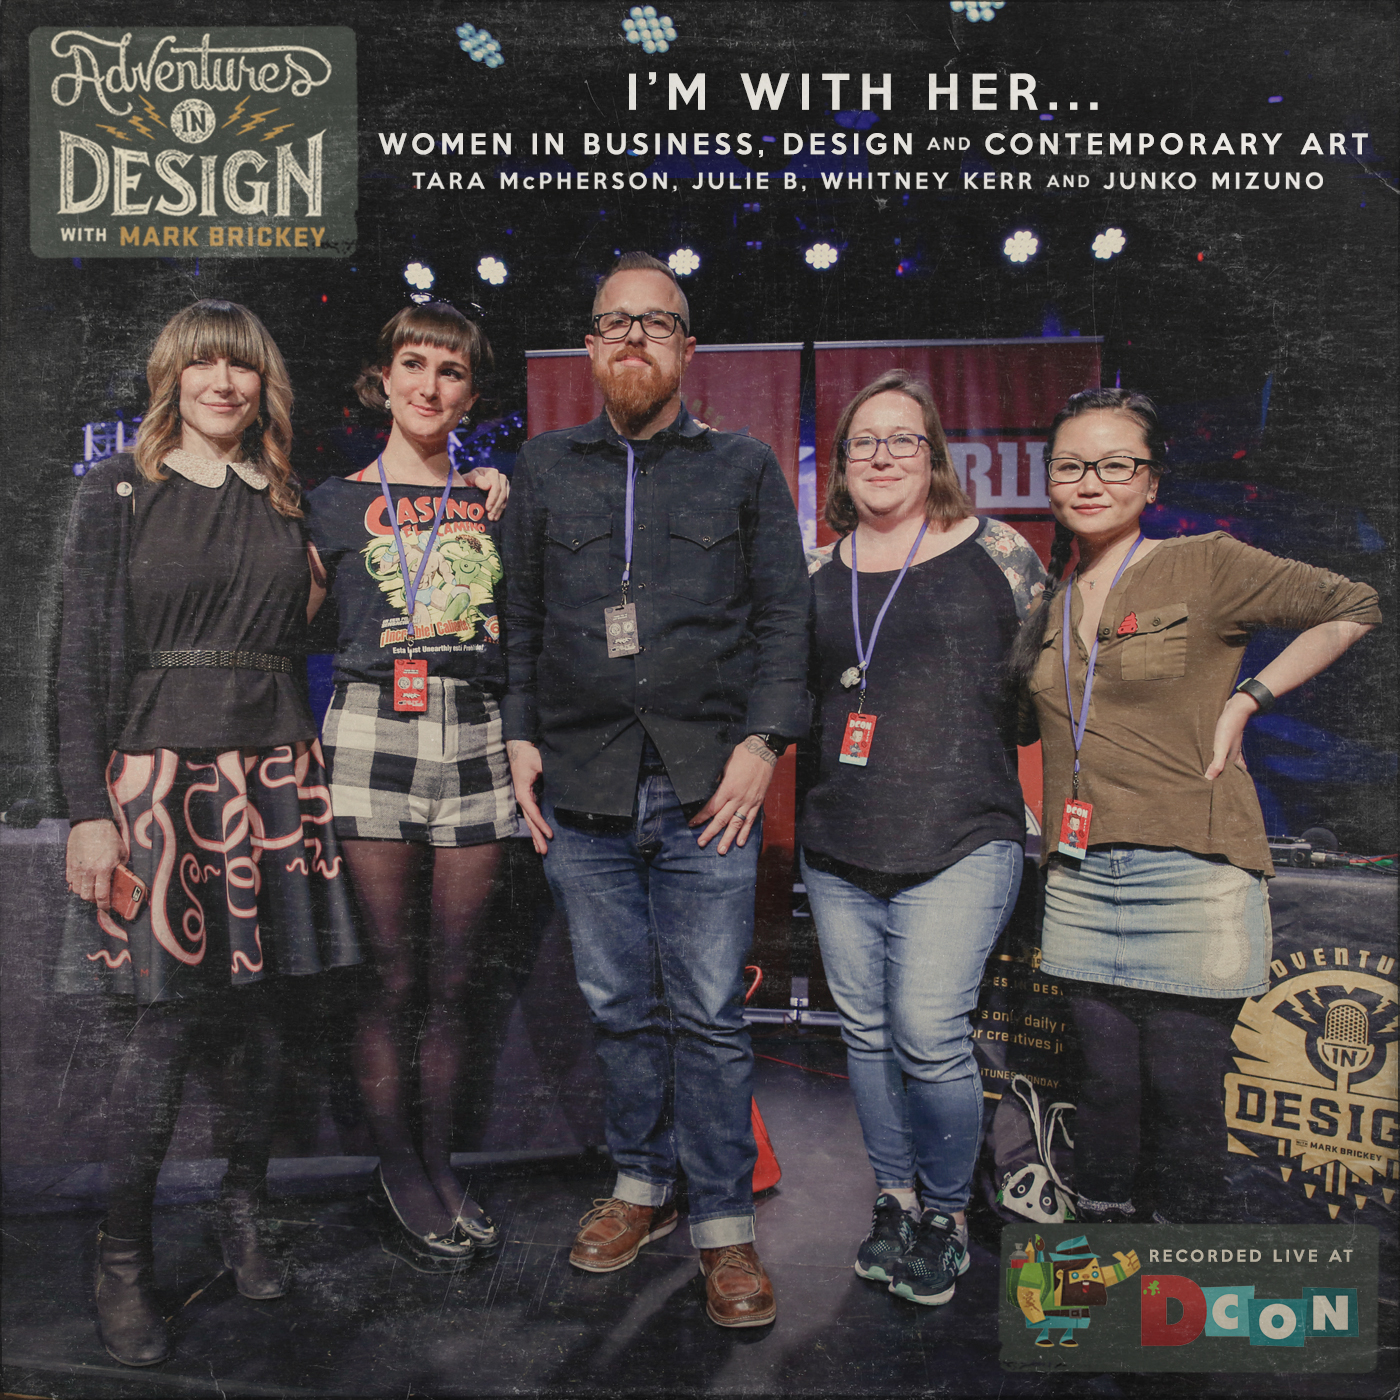 492 - I'm With Her... Women in business, design, and contemporary art with Tara McPherson, Julie B, Whitney Kerr, and Junko Mizuno